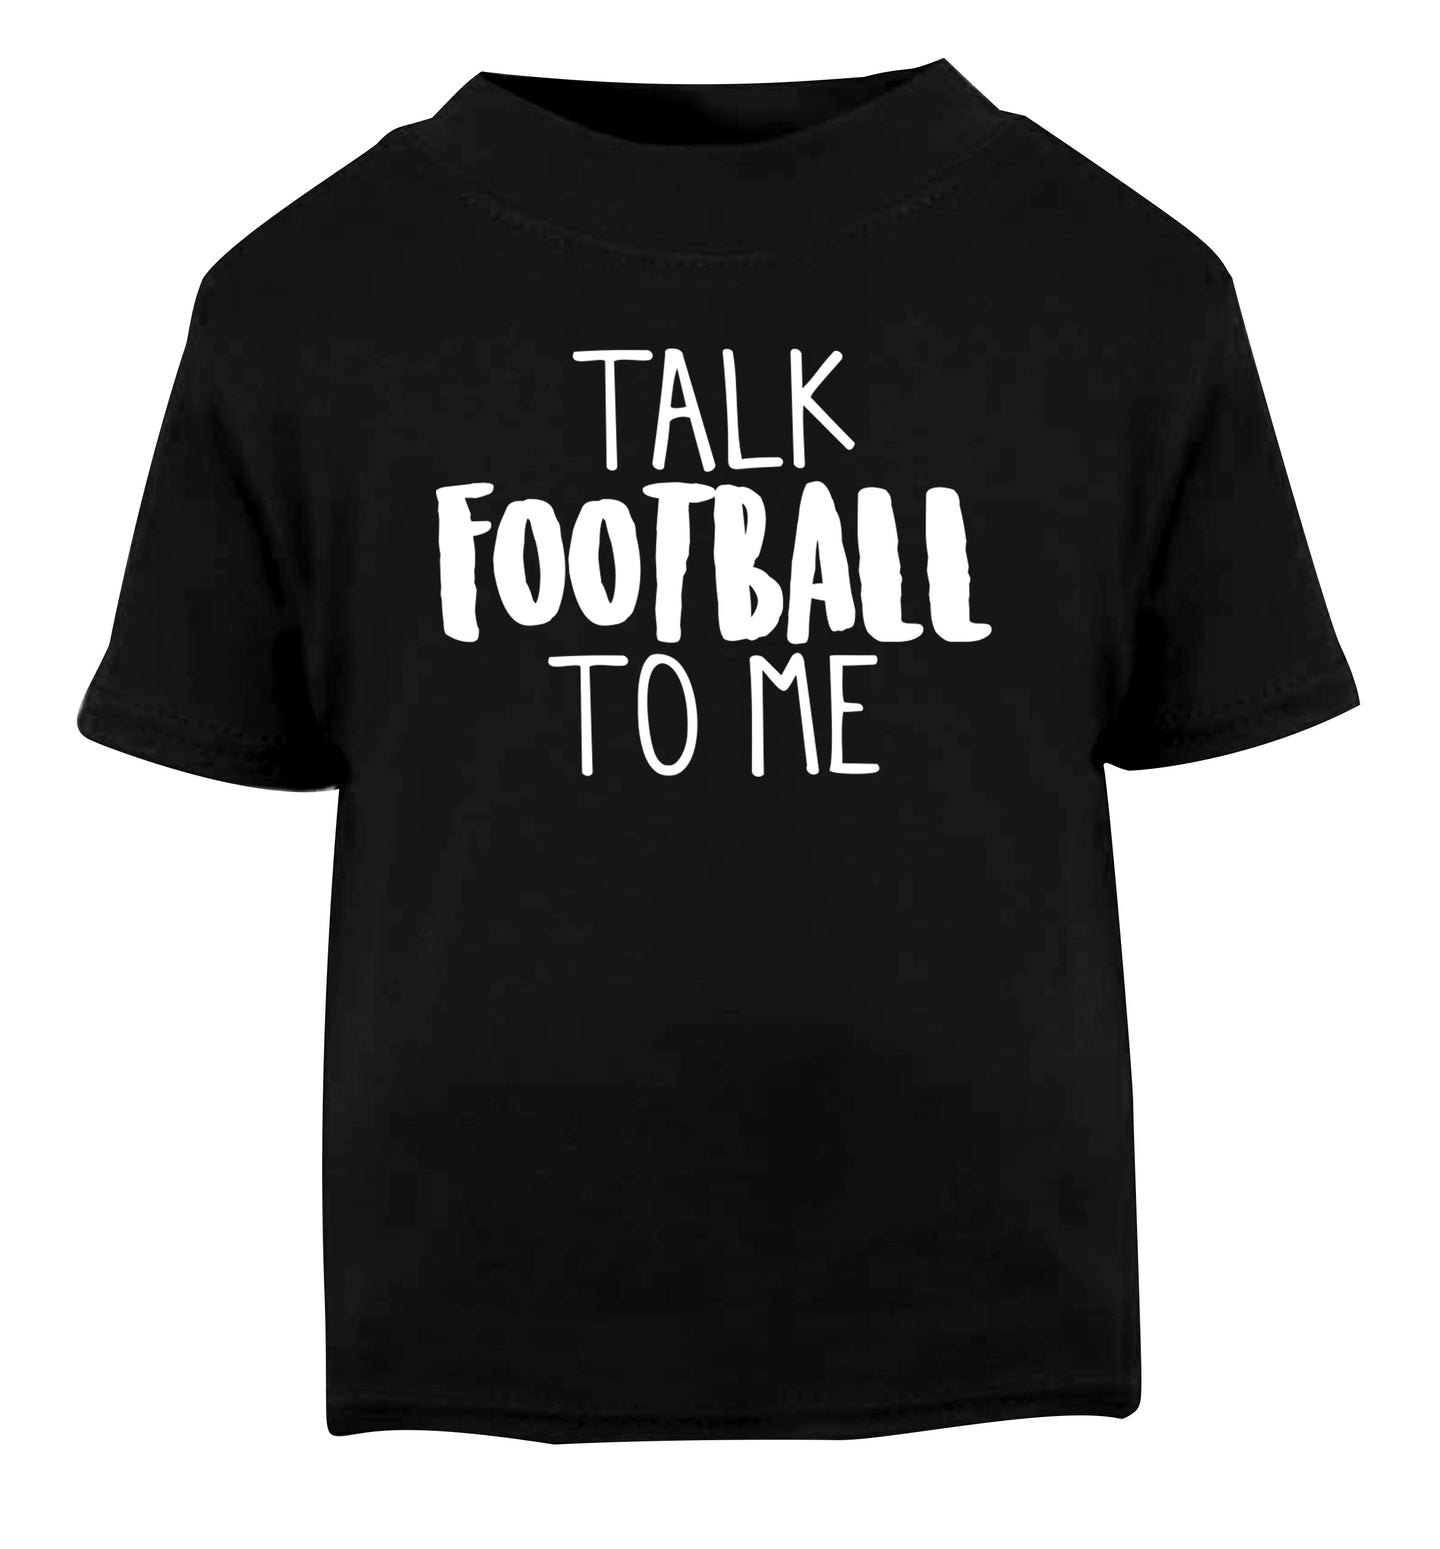 Talk football to me Black Baby Toddler Tshirt 2 years